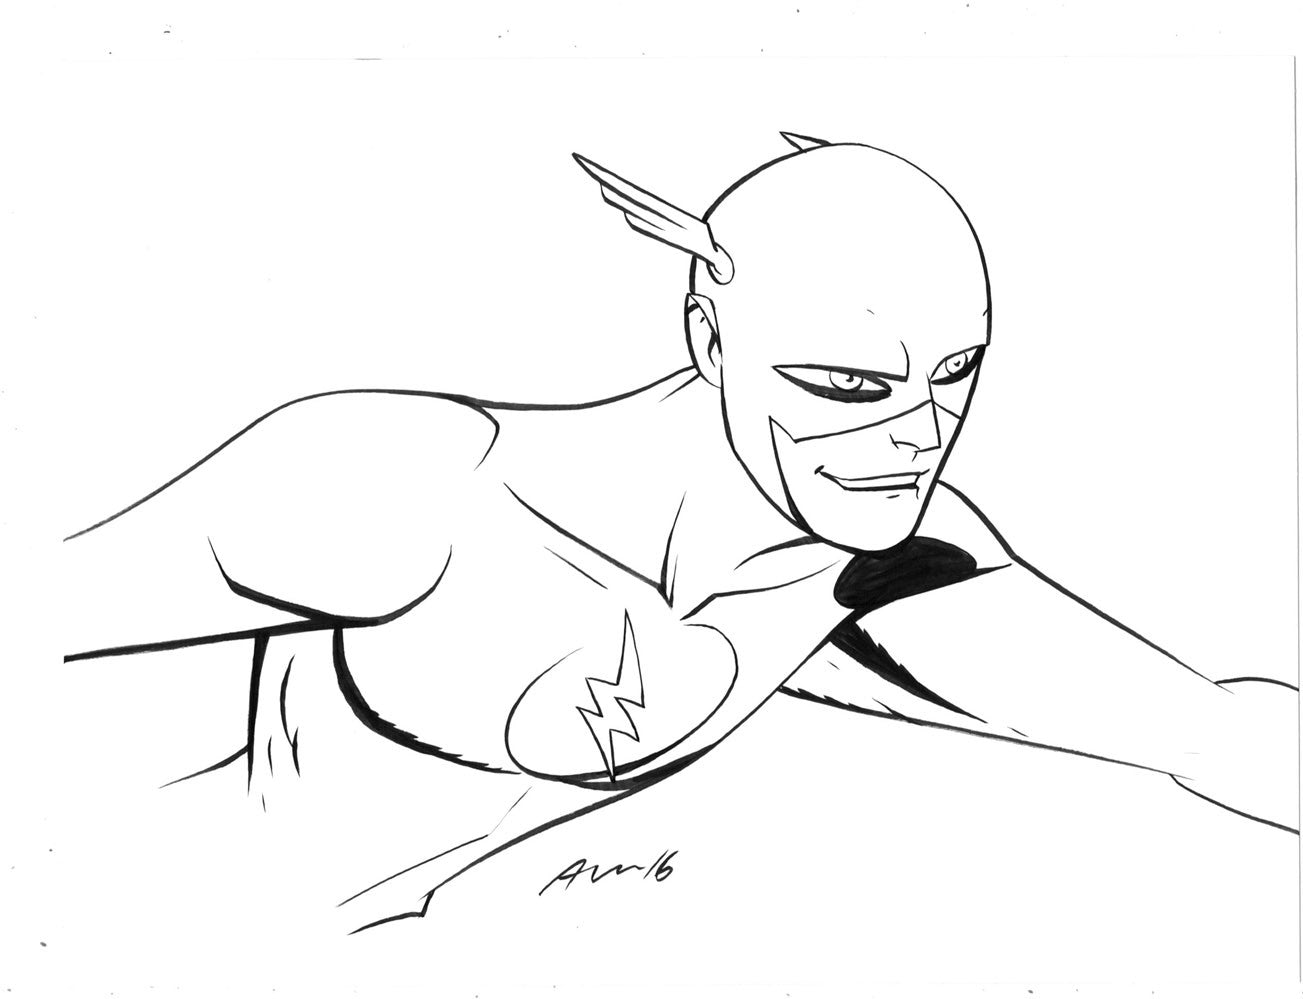 Daily Sketch The FLash!